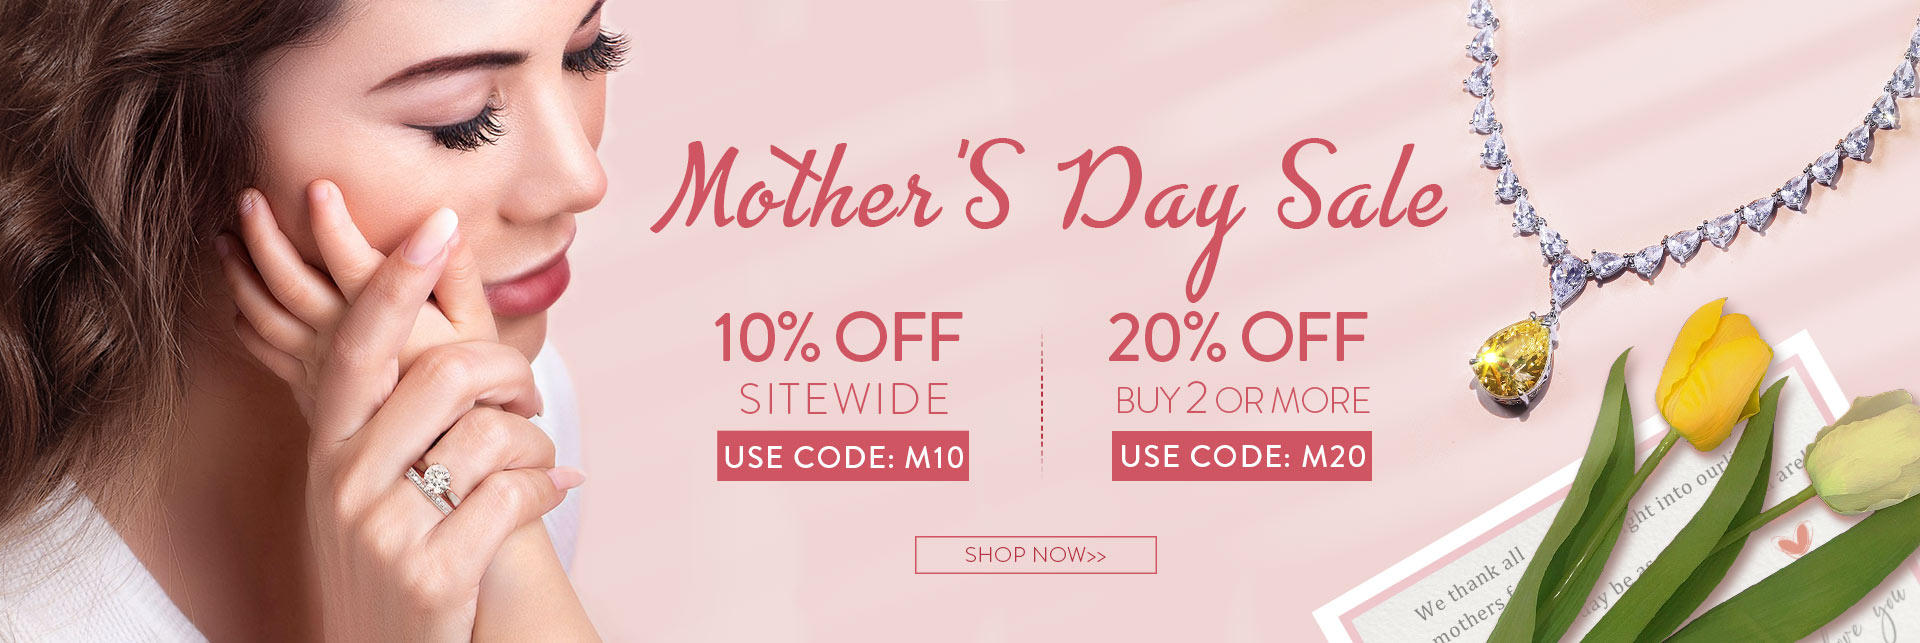 Mother's Day Sale 2021